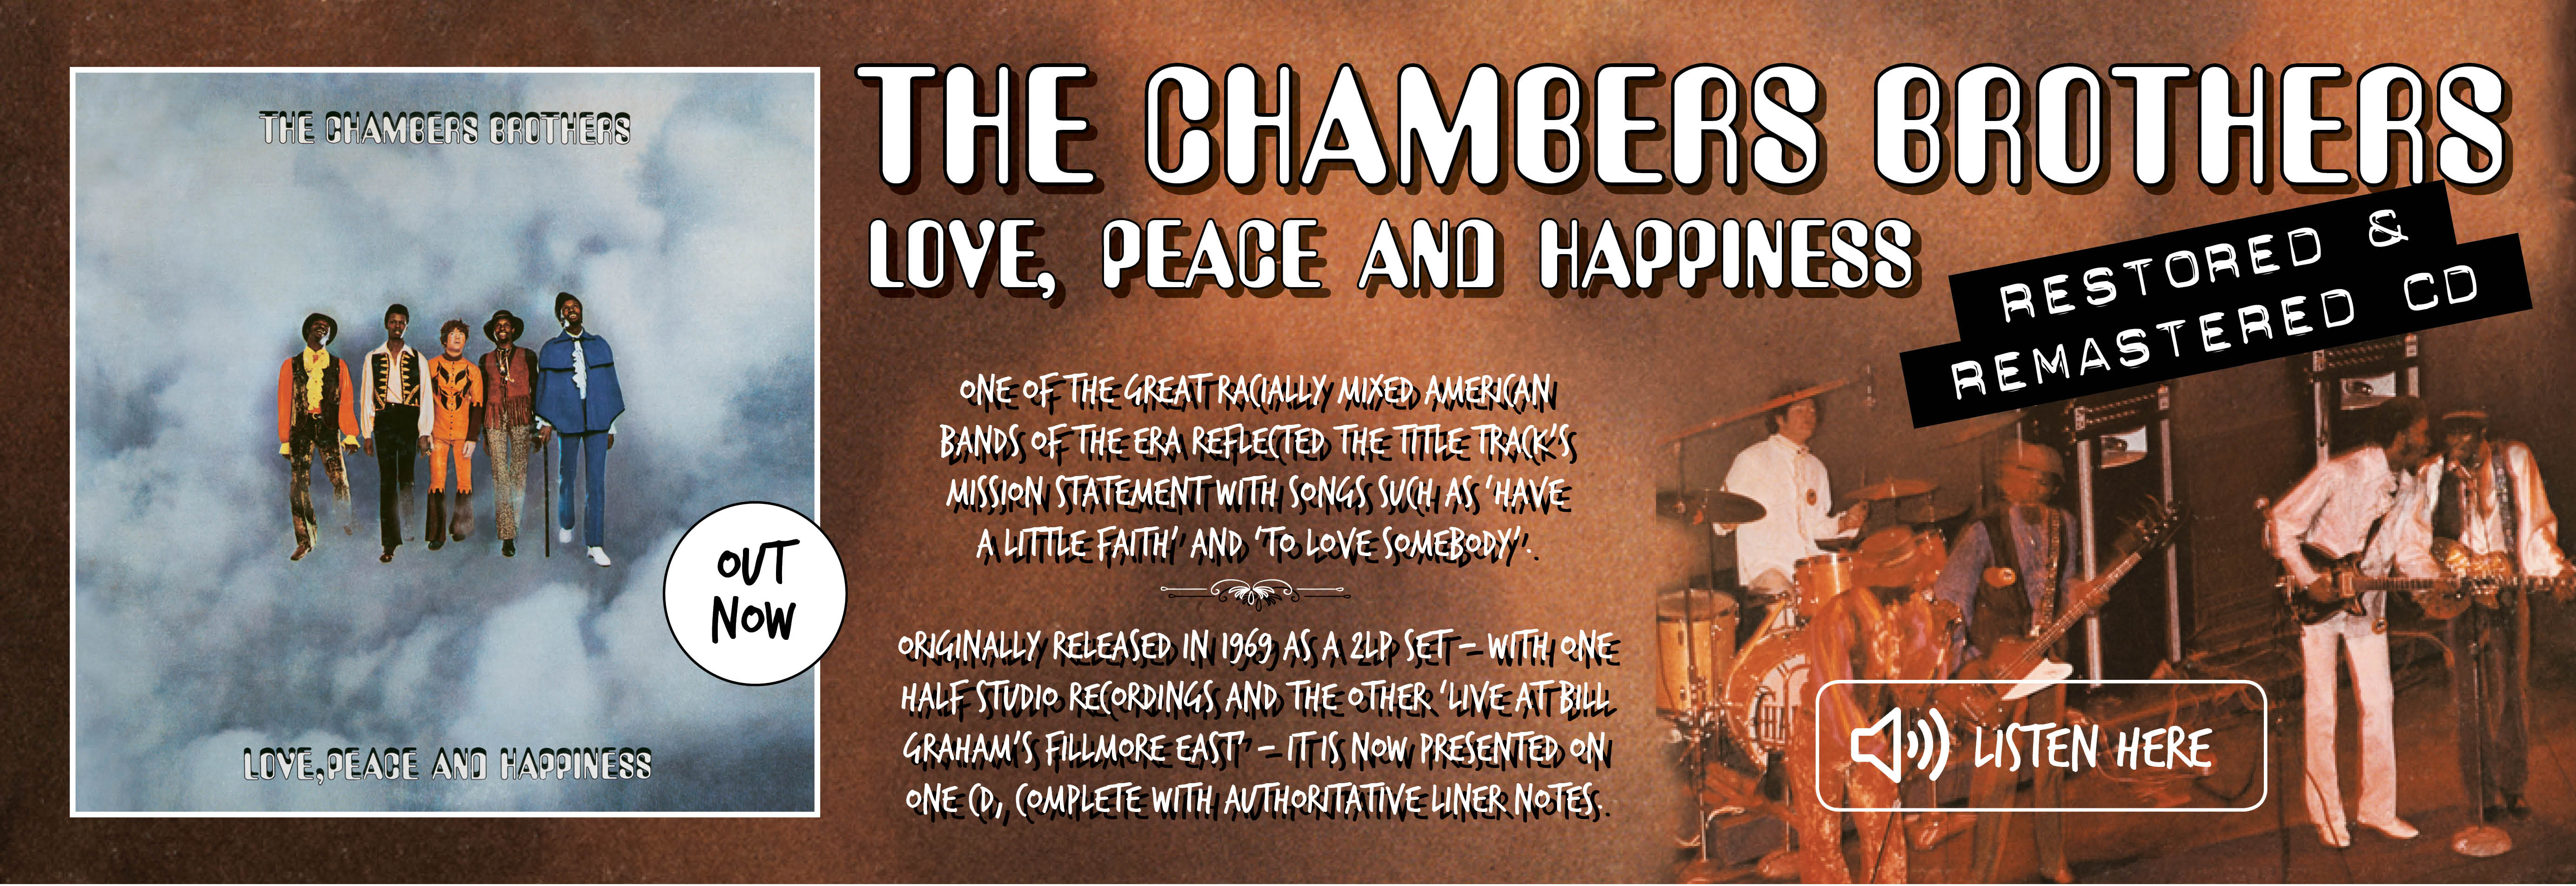 chambers-banner-CD-Out-Now-listen